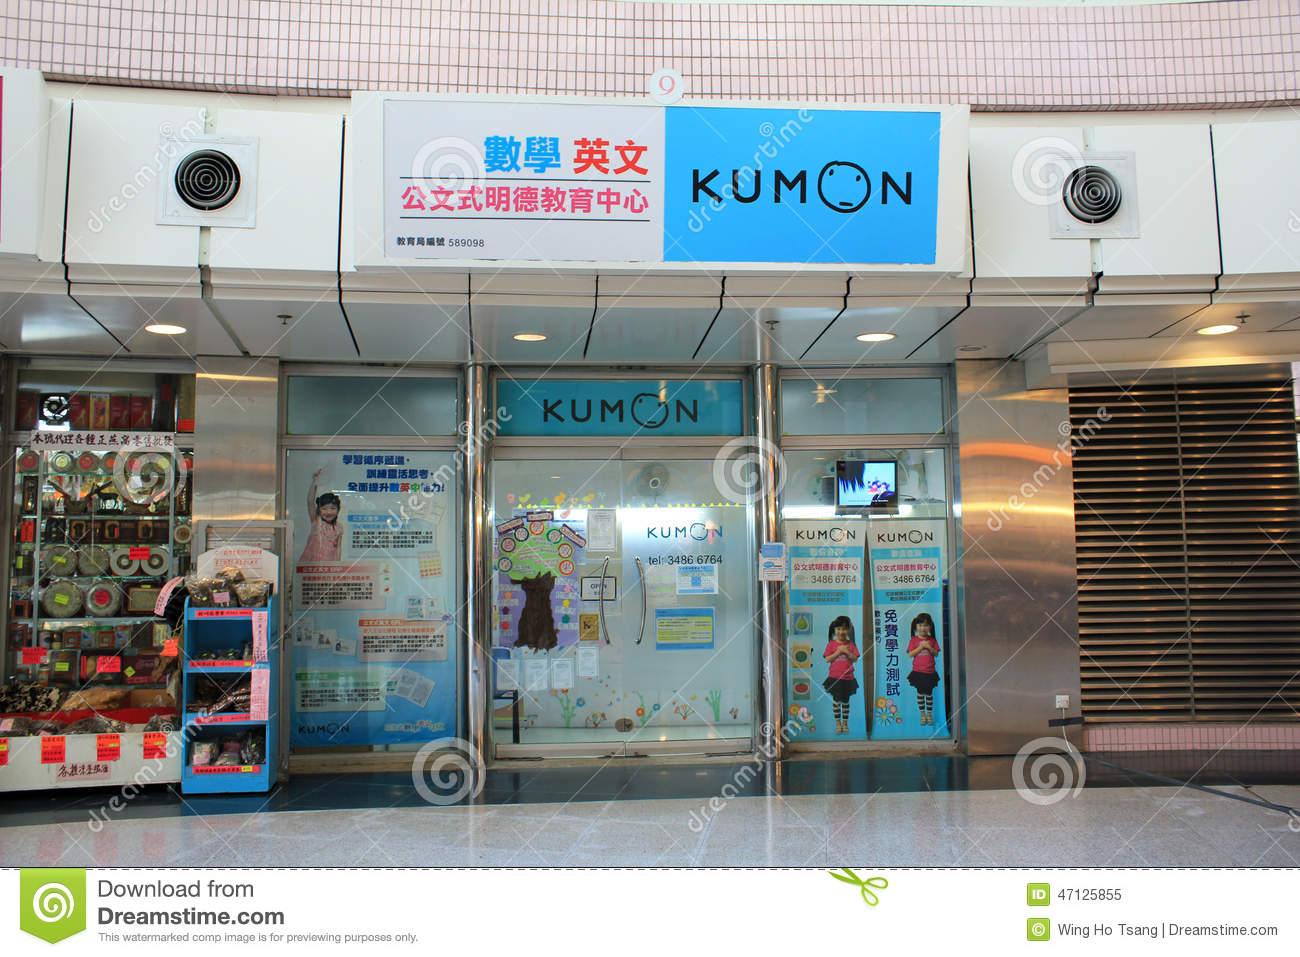 Kumon Stock Photos - Download 20 Images